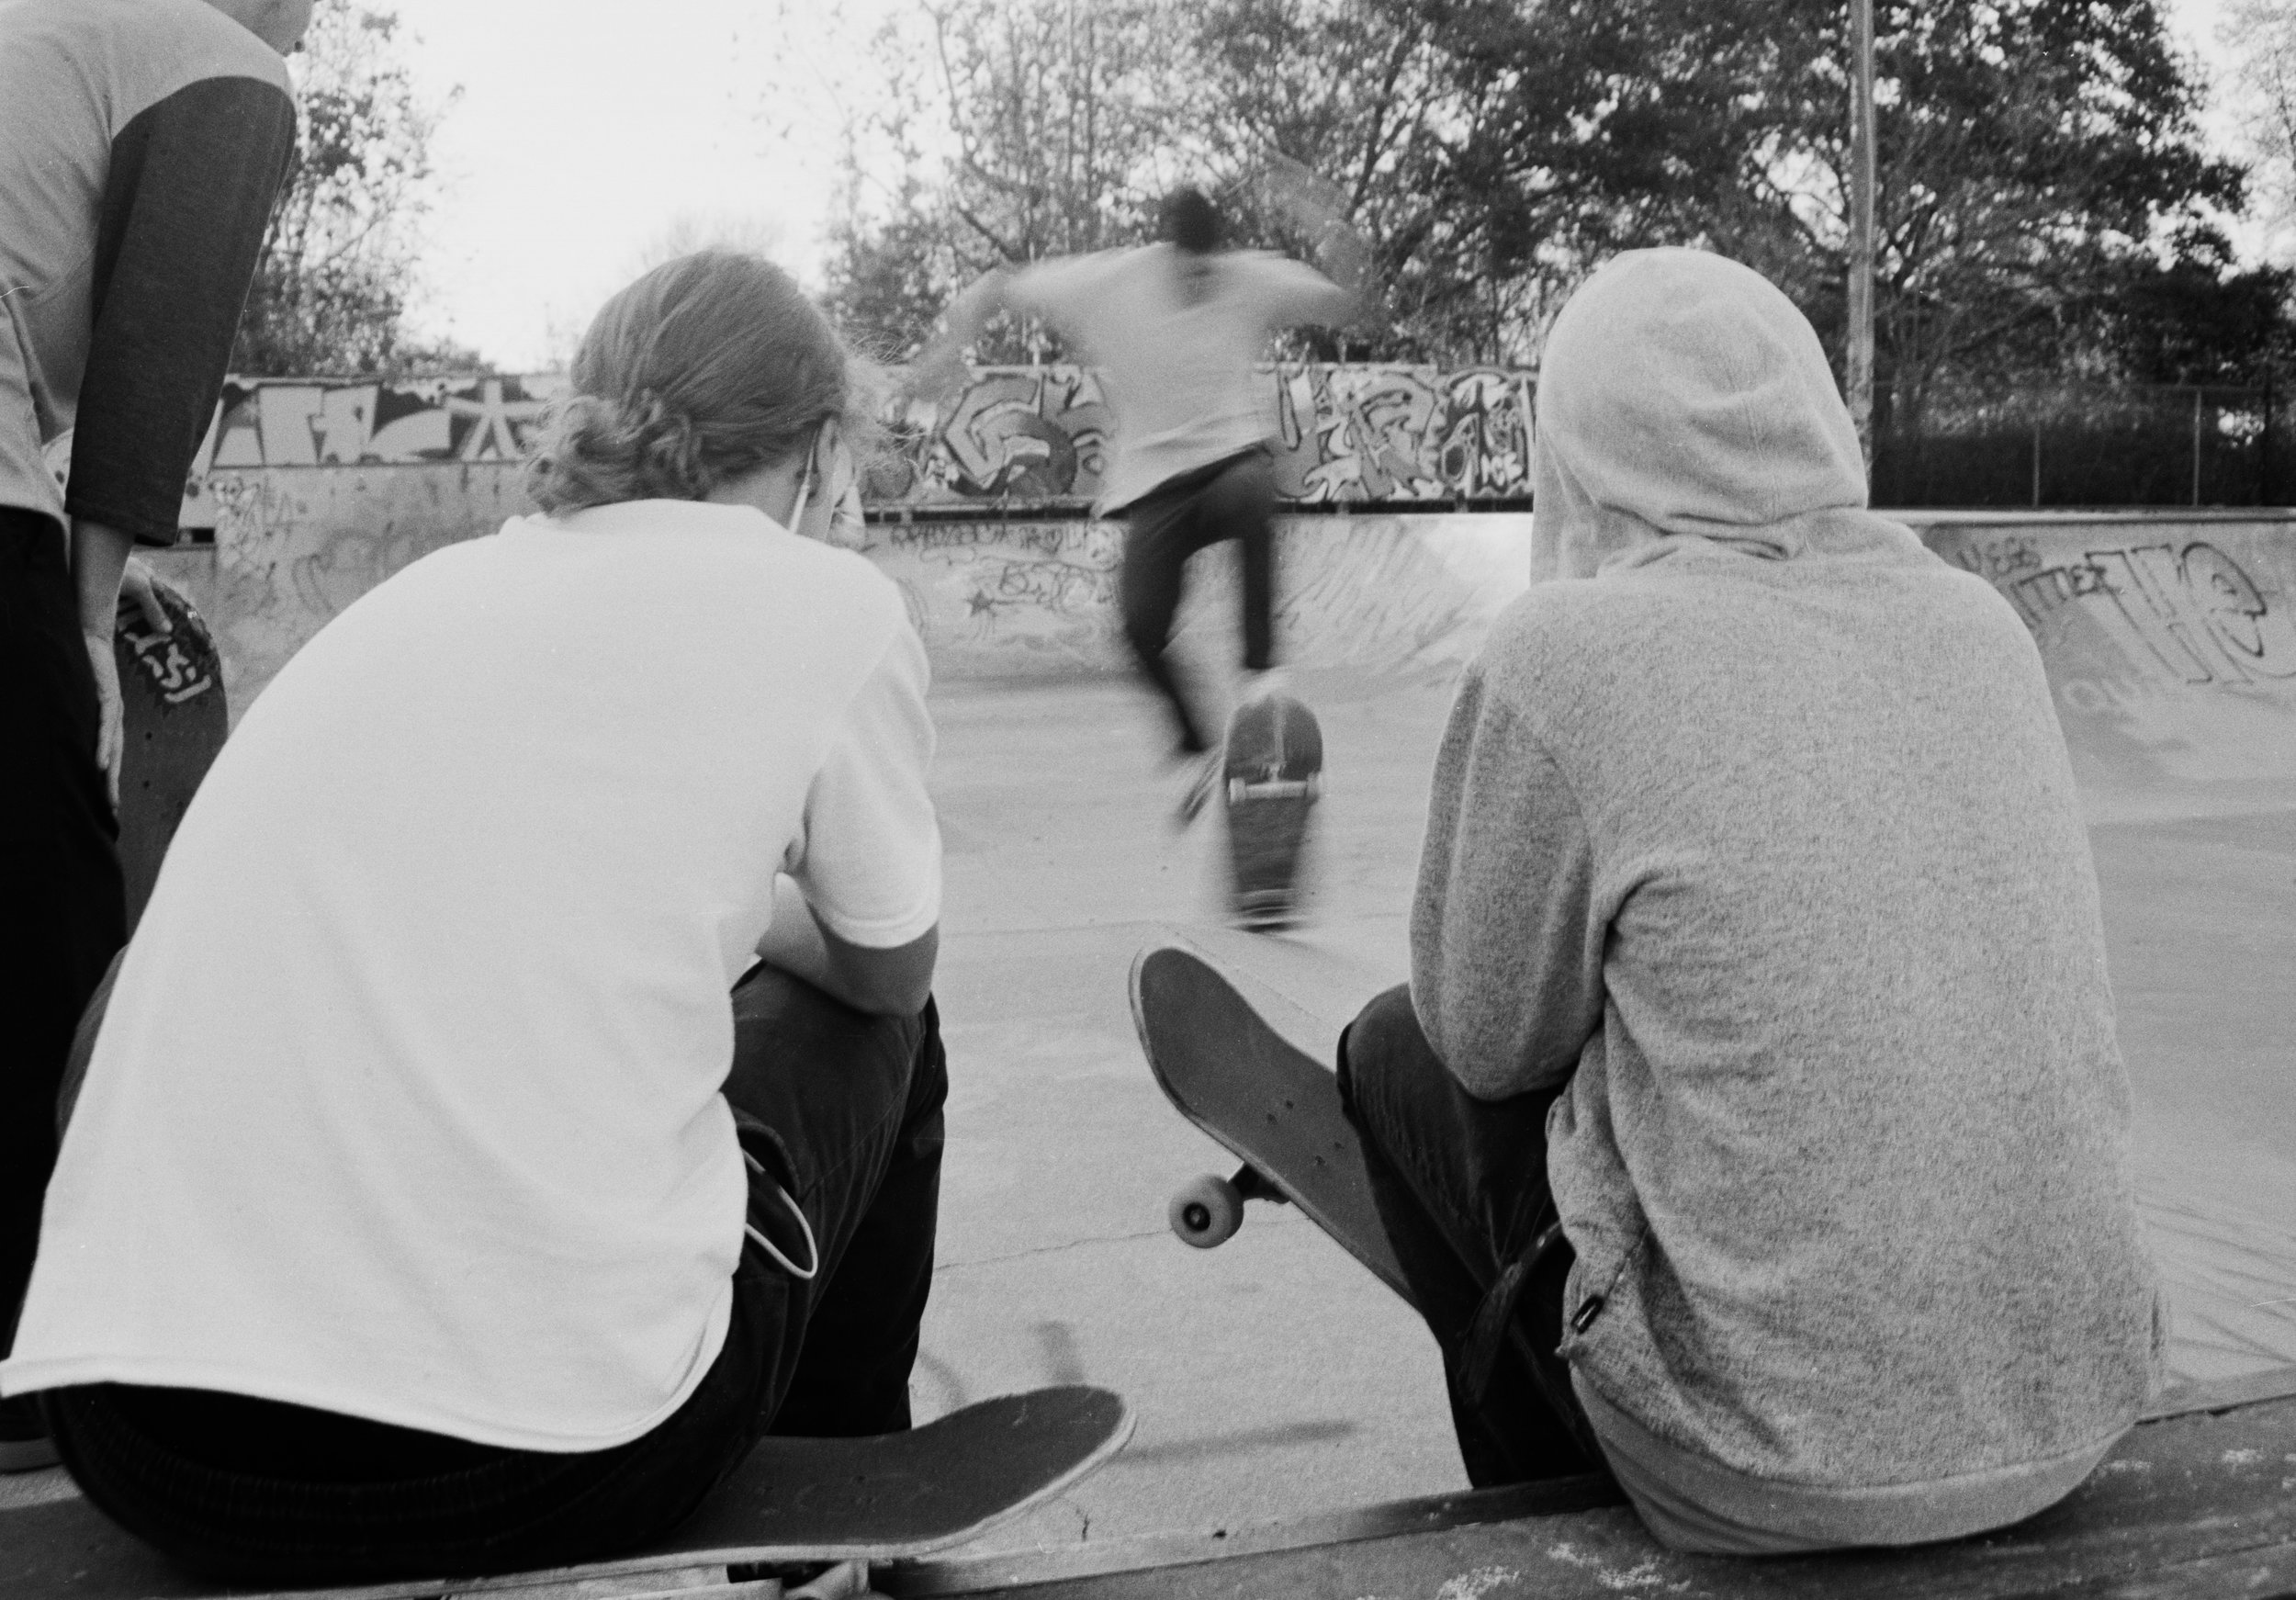 THE FILTHY GRIND - WORDS AND PHOTOS BY JACOB GRALTON